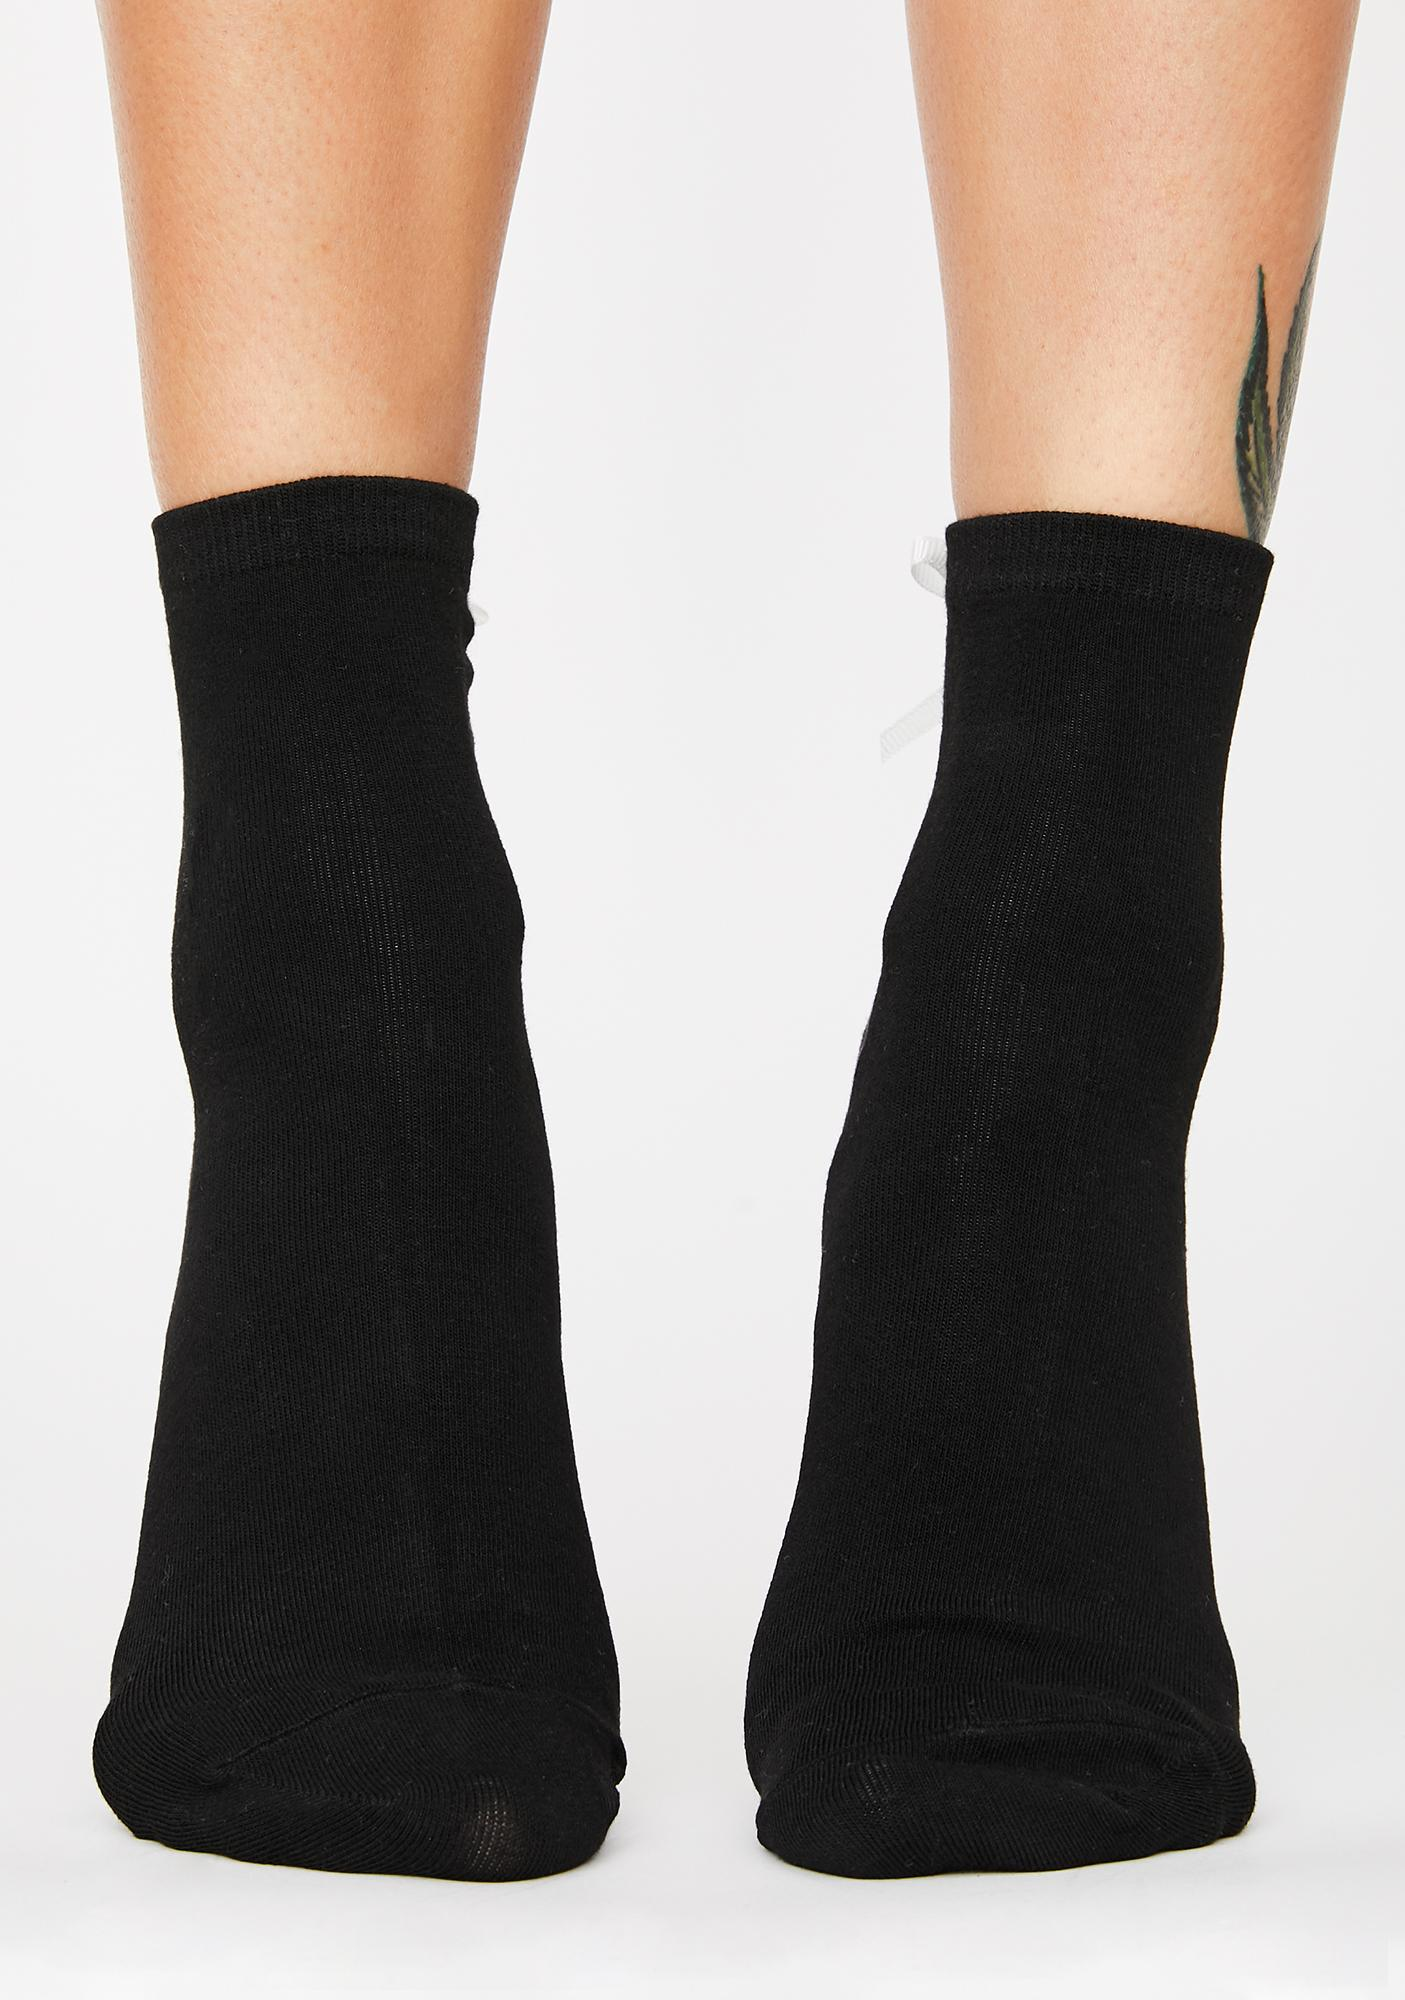 Dark Delicate Balance Ankle Socks